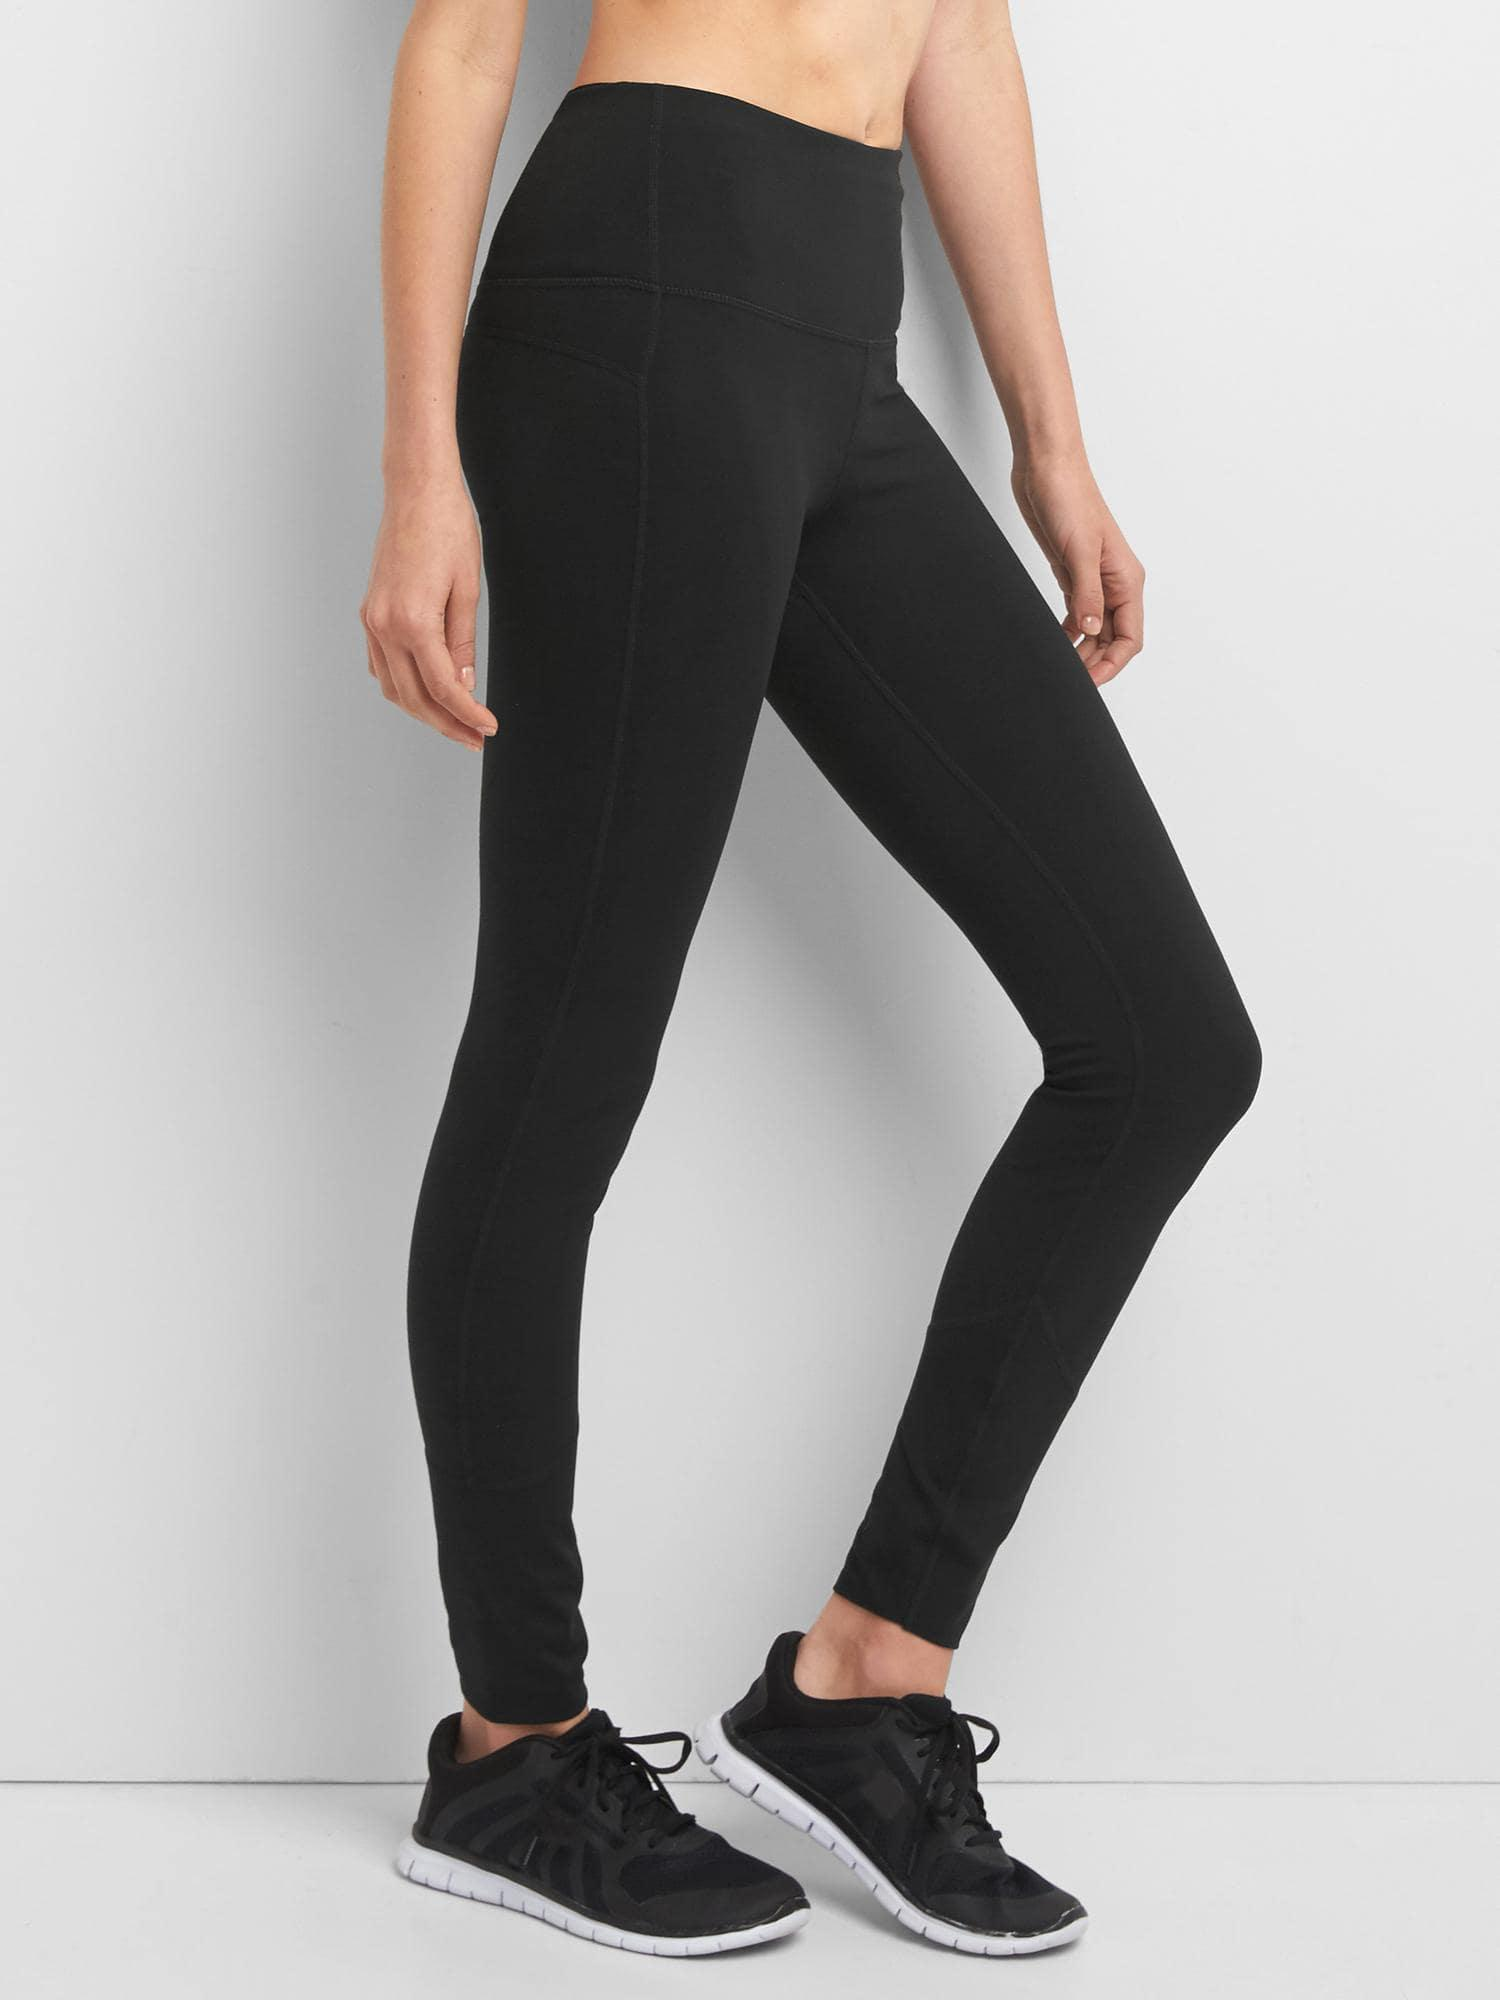 20f5932a32cc0 Lyst - Gap Fit High Rise Blackout Full Length Leggings in Black